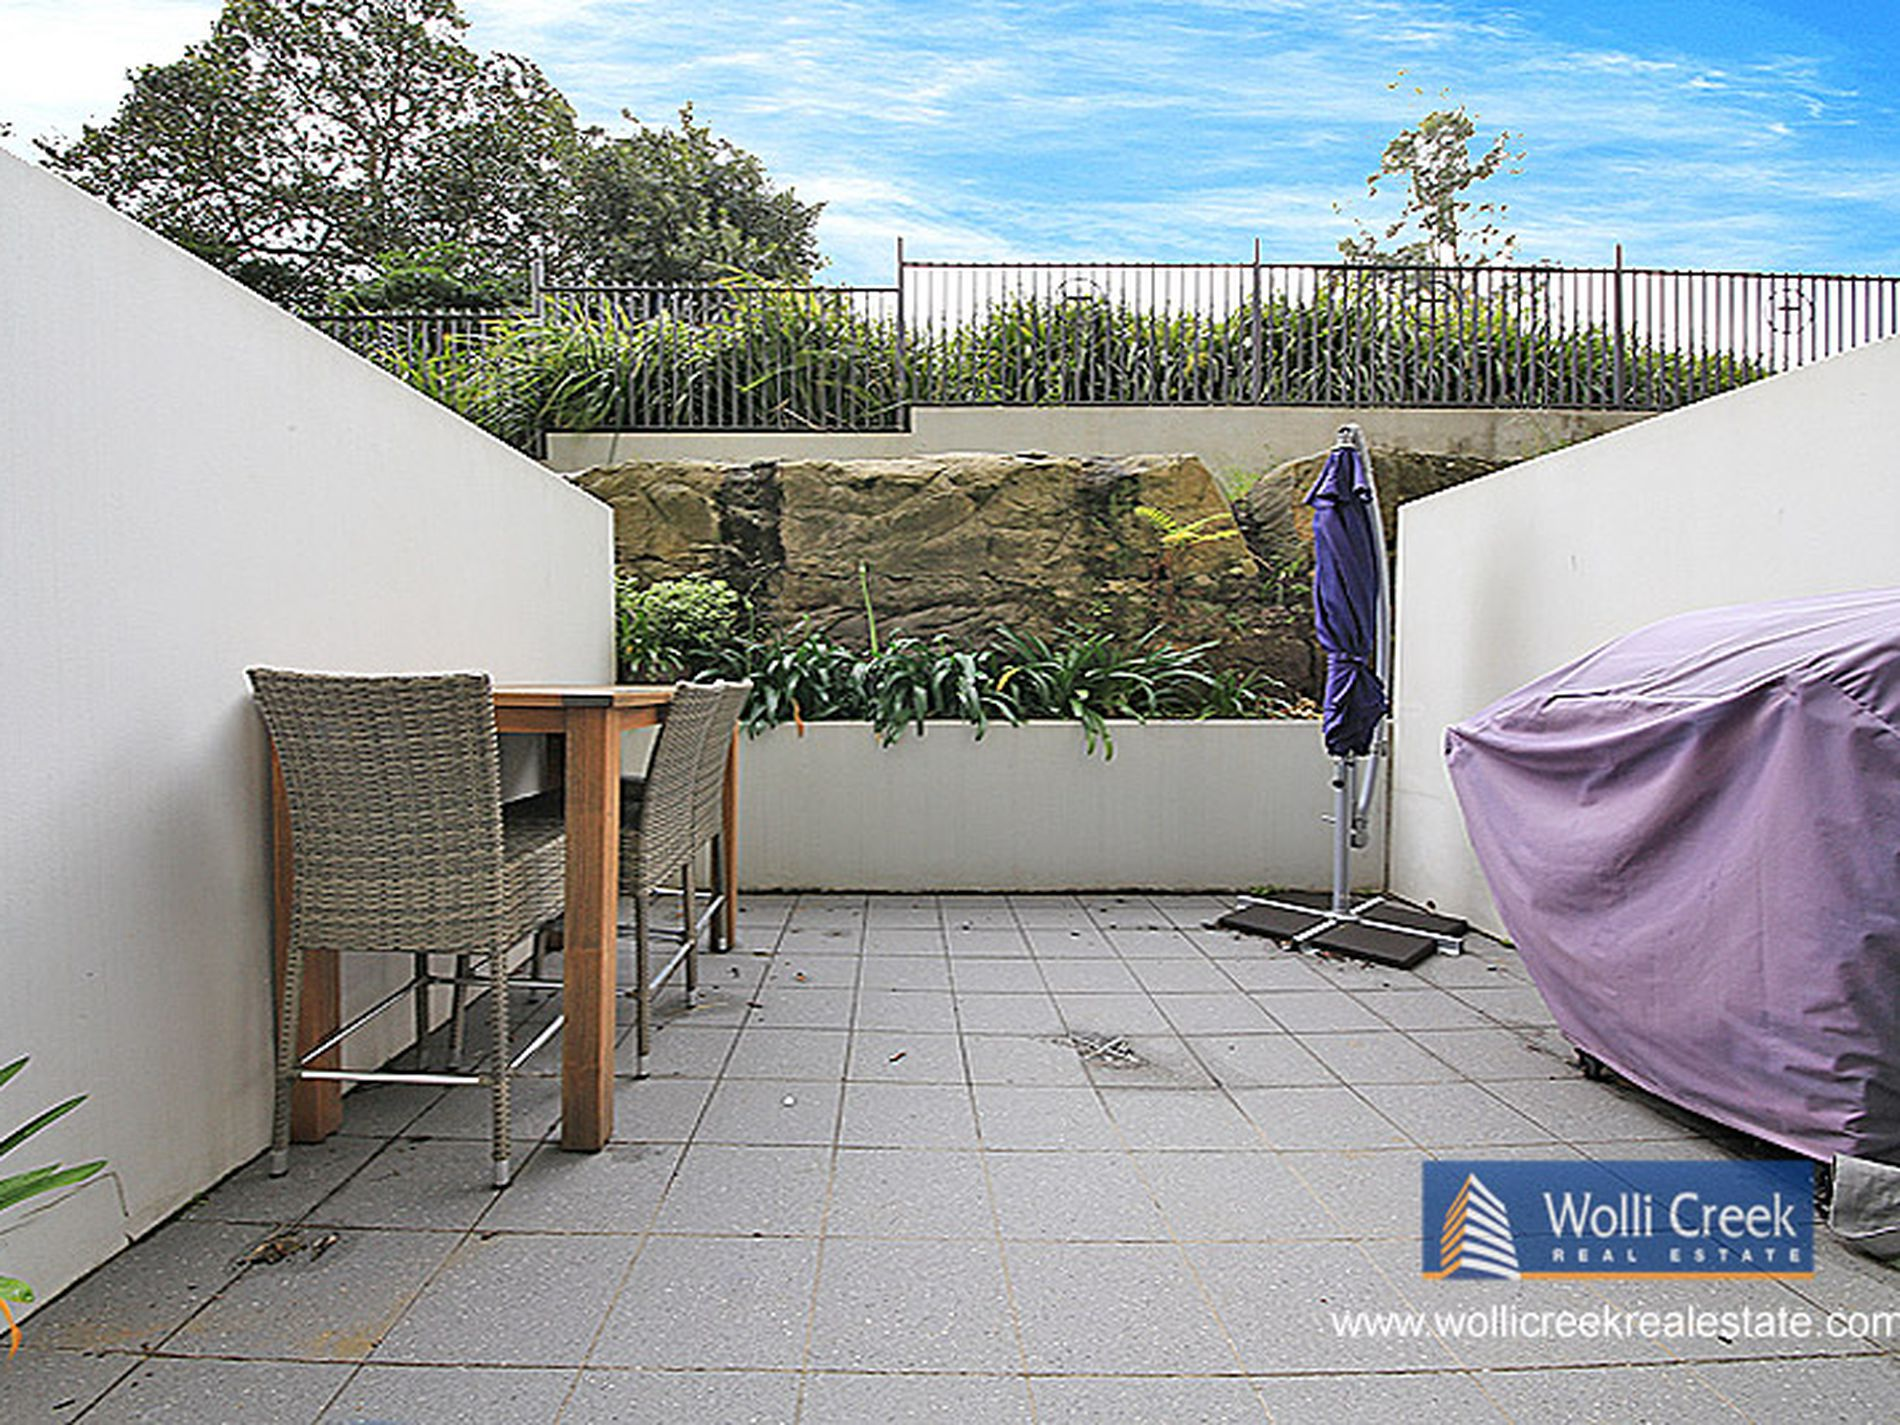 207 / 2 Brodie Spark Dr, Wolli Creek